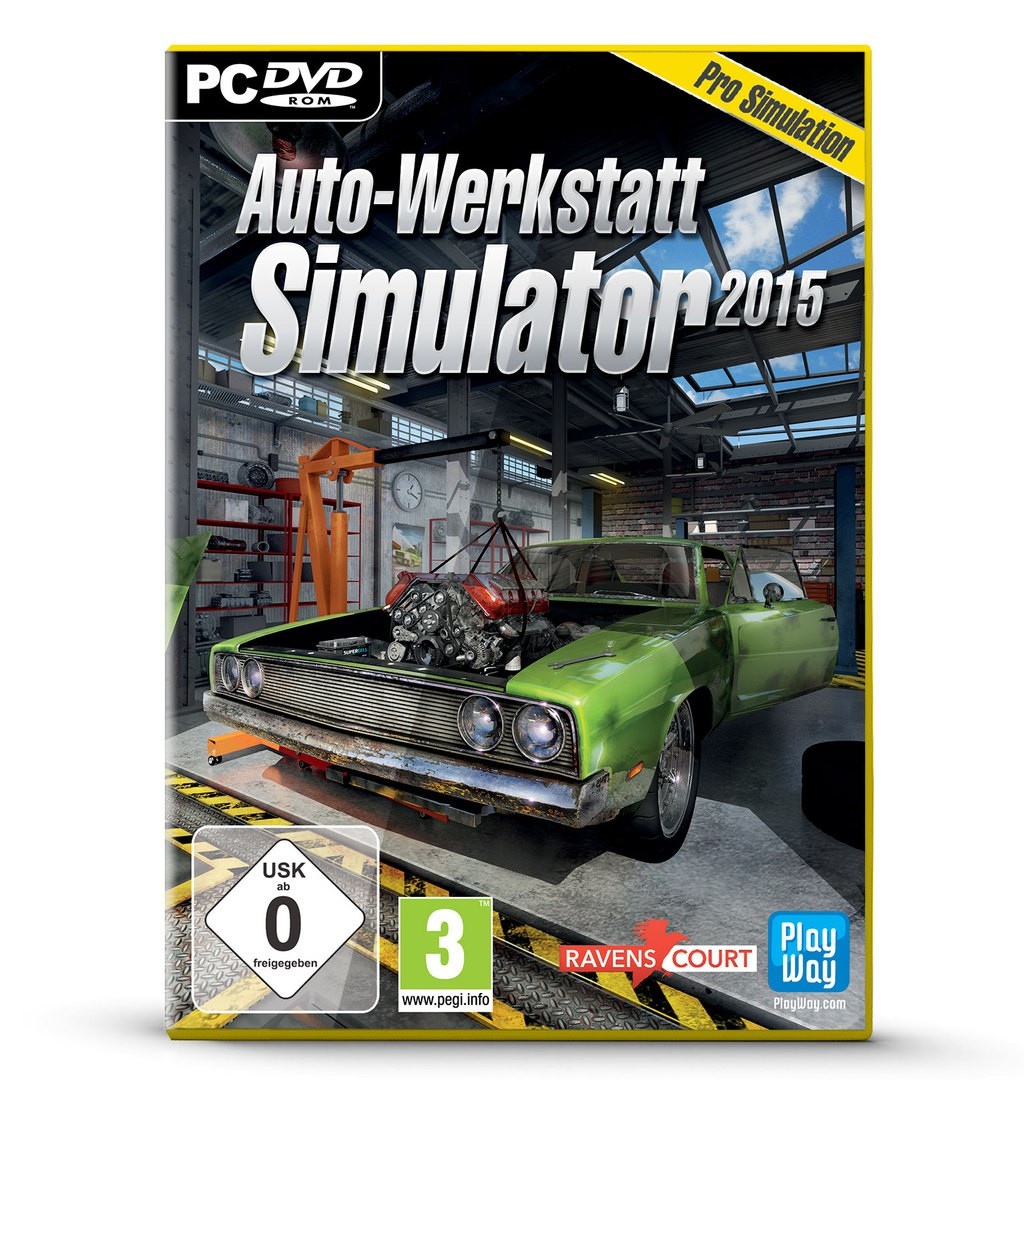 auto werkstatt simulator 2015 media covers dlh net. Black Bedroom Furniture Sets. Home Design Ideas